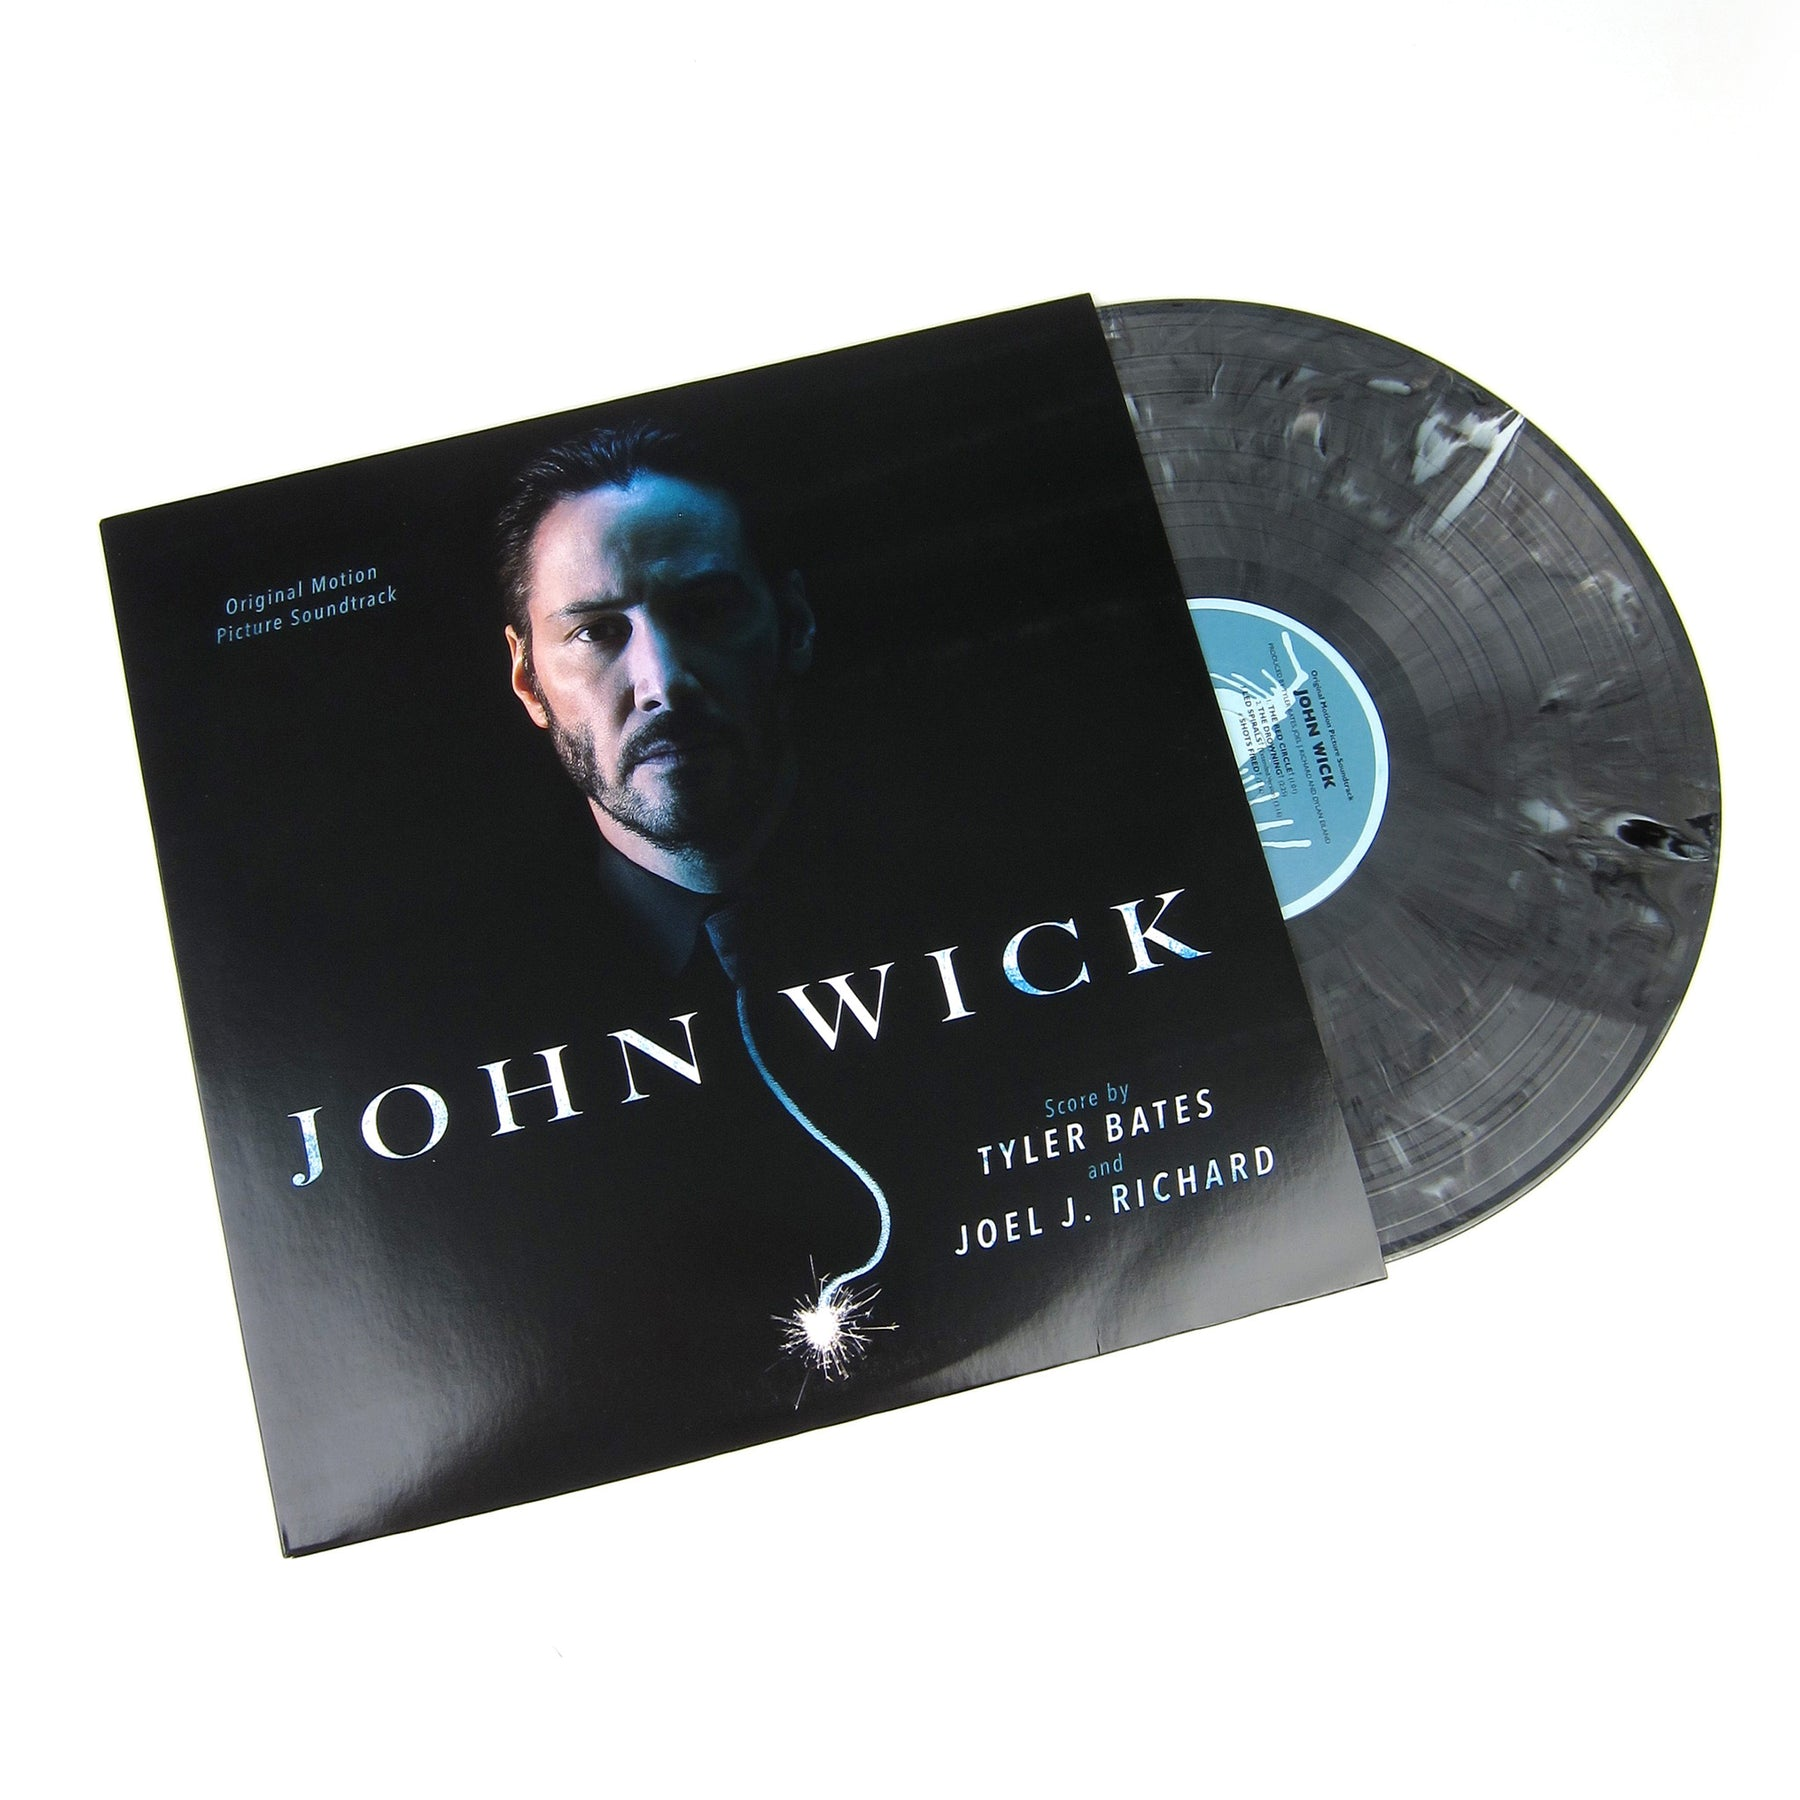 Tyler Bates And Joel J  Richard John Wick Original Motion Picture  Soundtrack (180g, Colored Vinyl) Vinyl LP (Record Store Day)